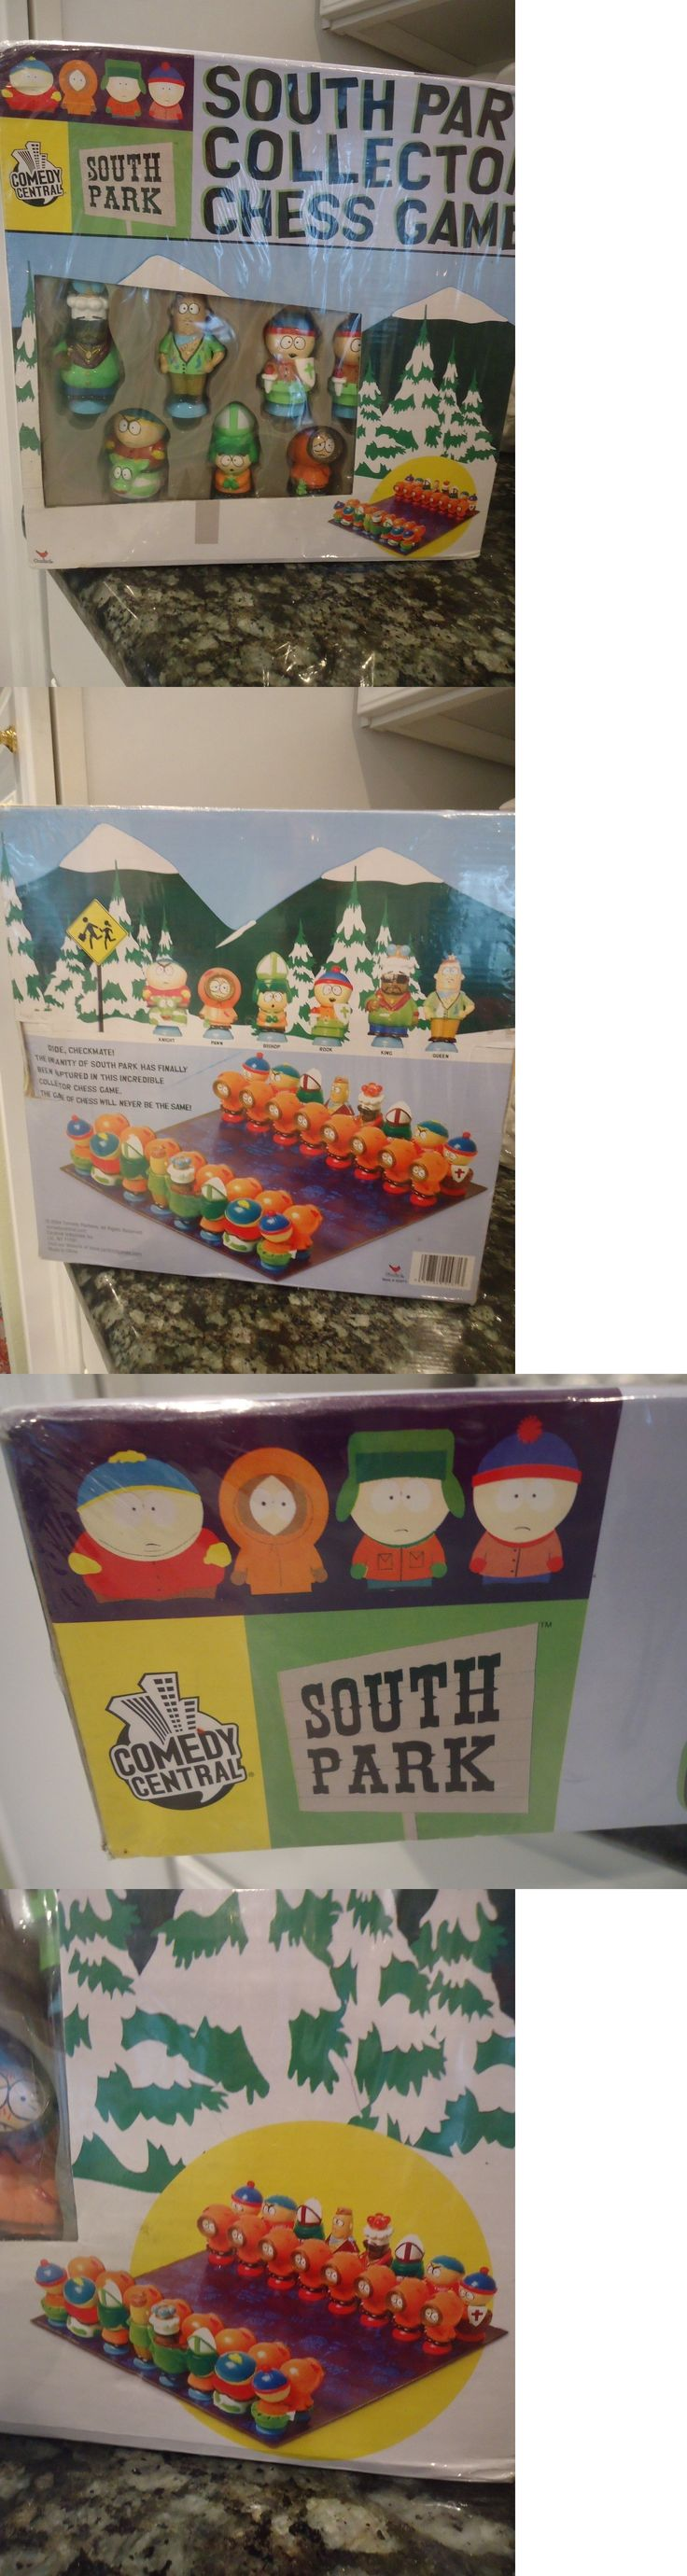 Contemporary Chess 40856: New Comedy Central South Park Collector Chess Game -> BUY IT NOW ONLY: $40 on eBay!